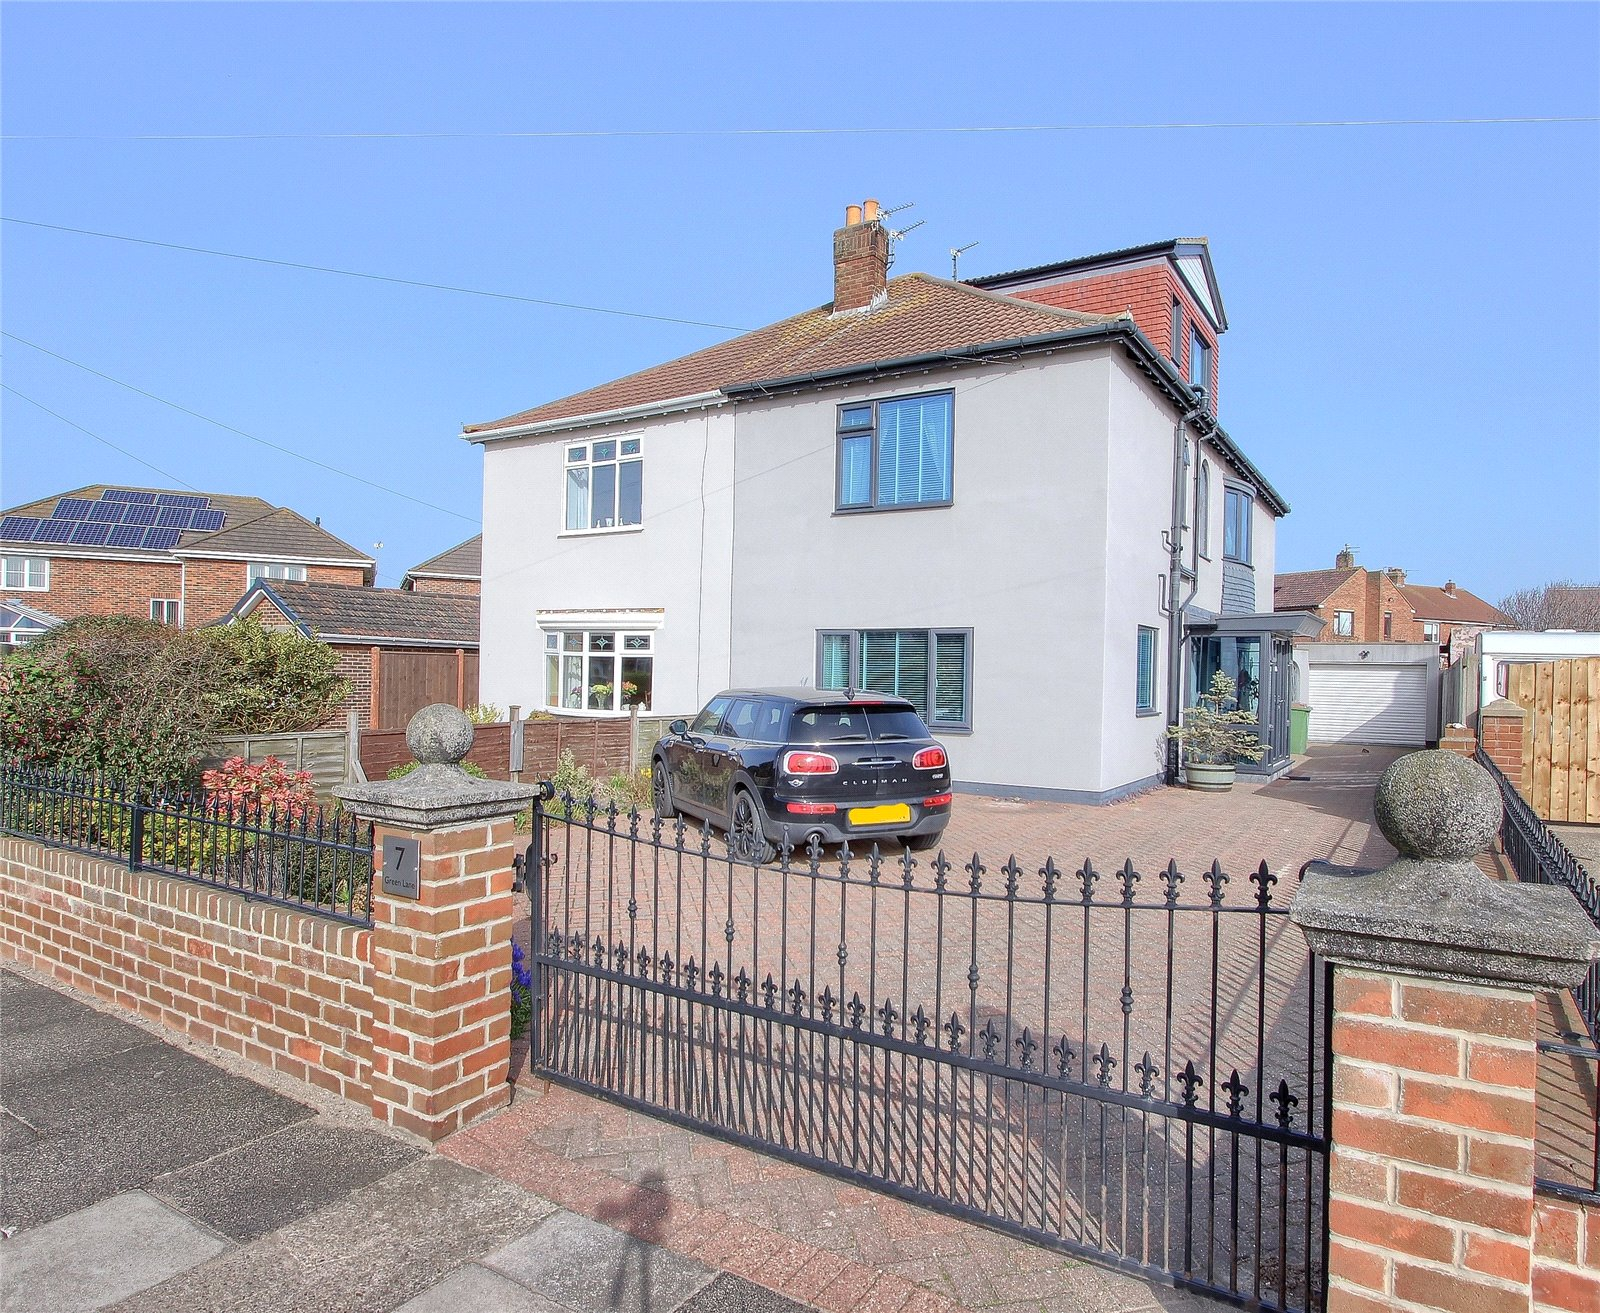 4 bed house for sale in Green Lane, Redcar 1